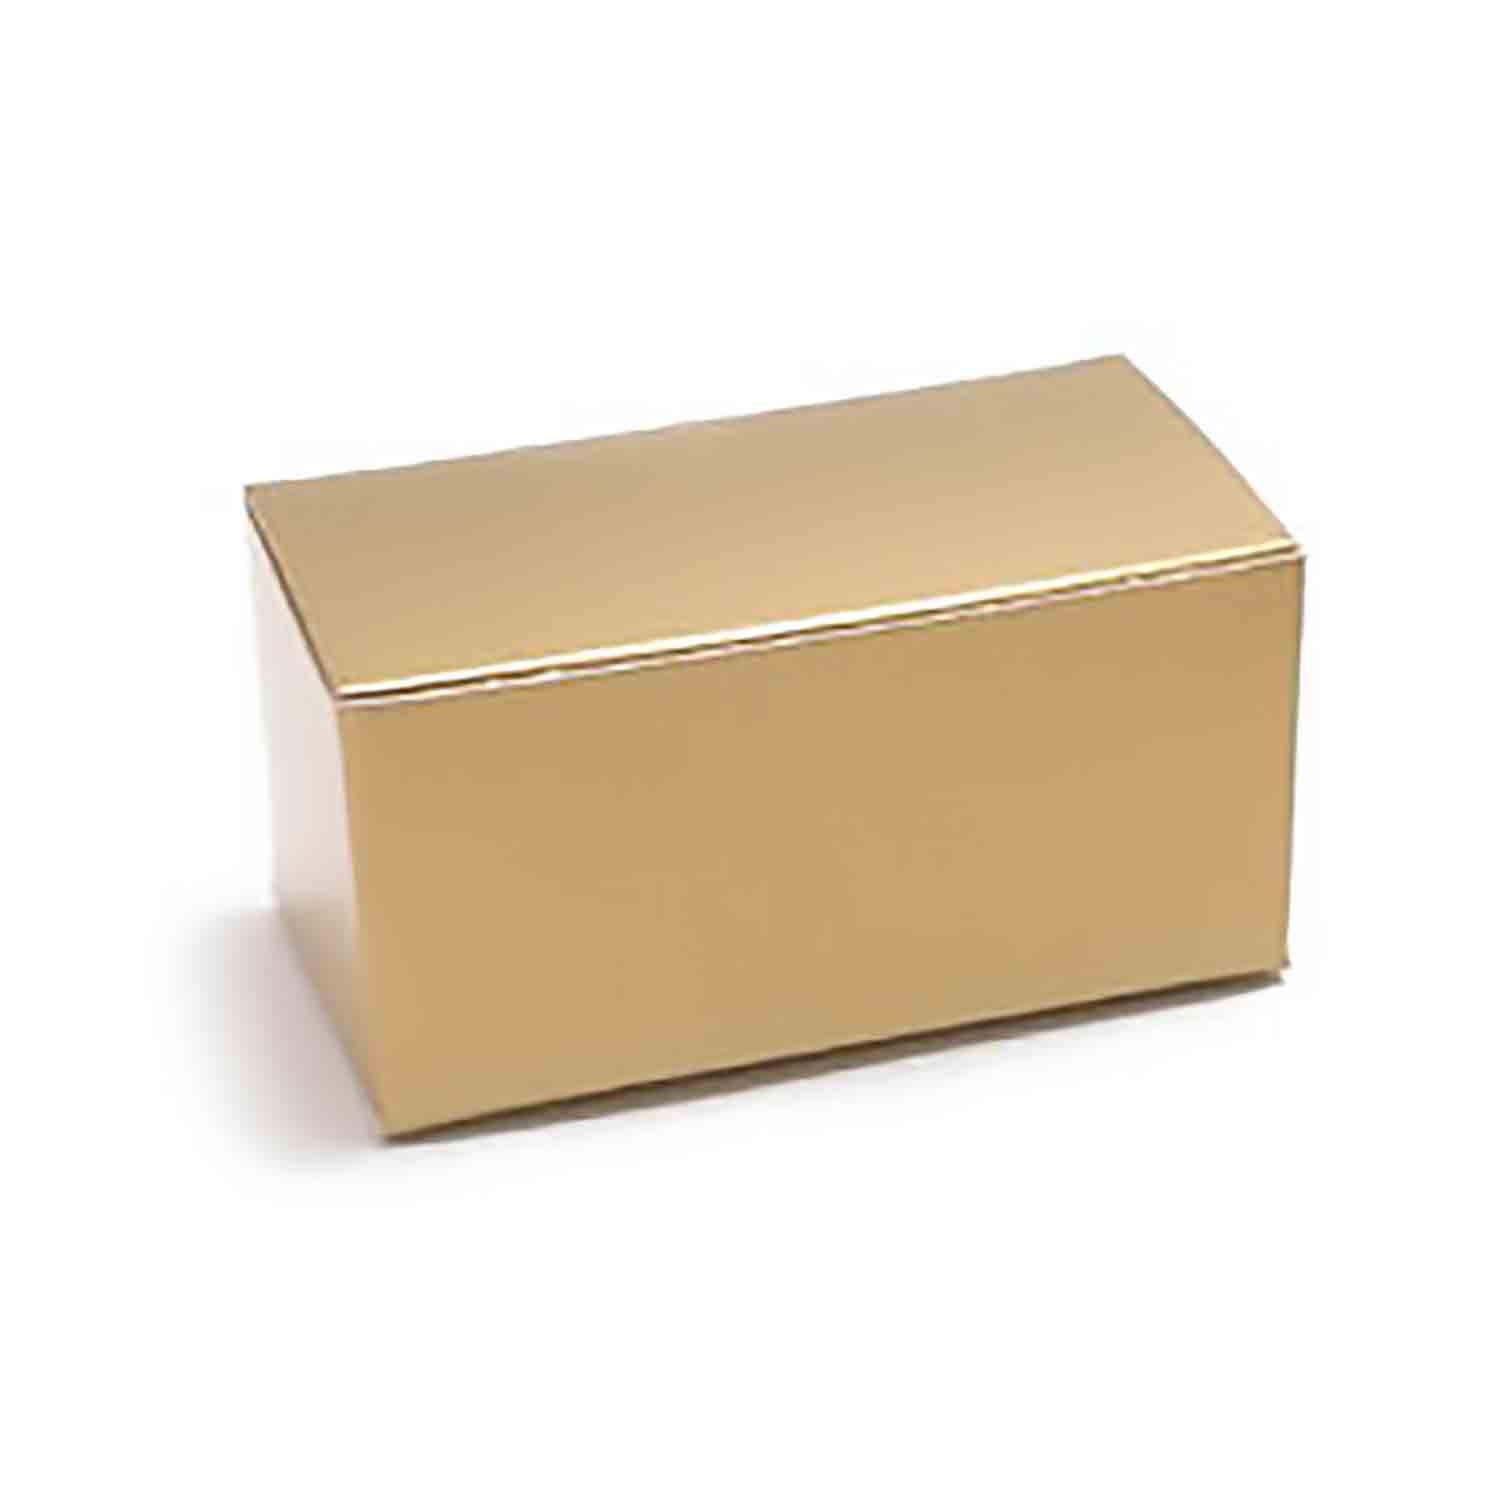 2 Pc. Gold Candy Box